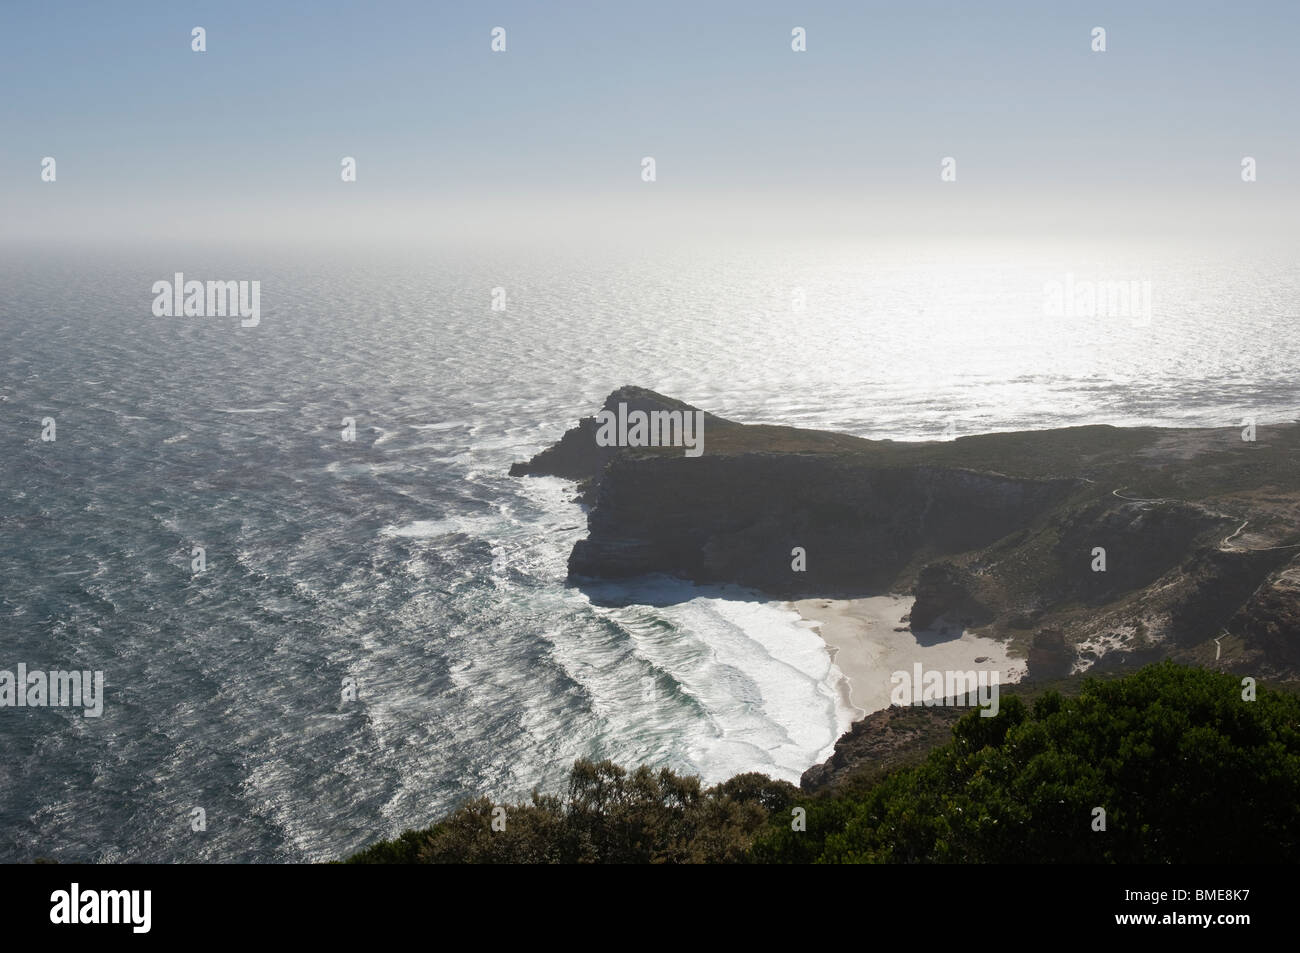 Sunlight over outcrop and ocean - Stock Image